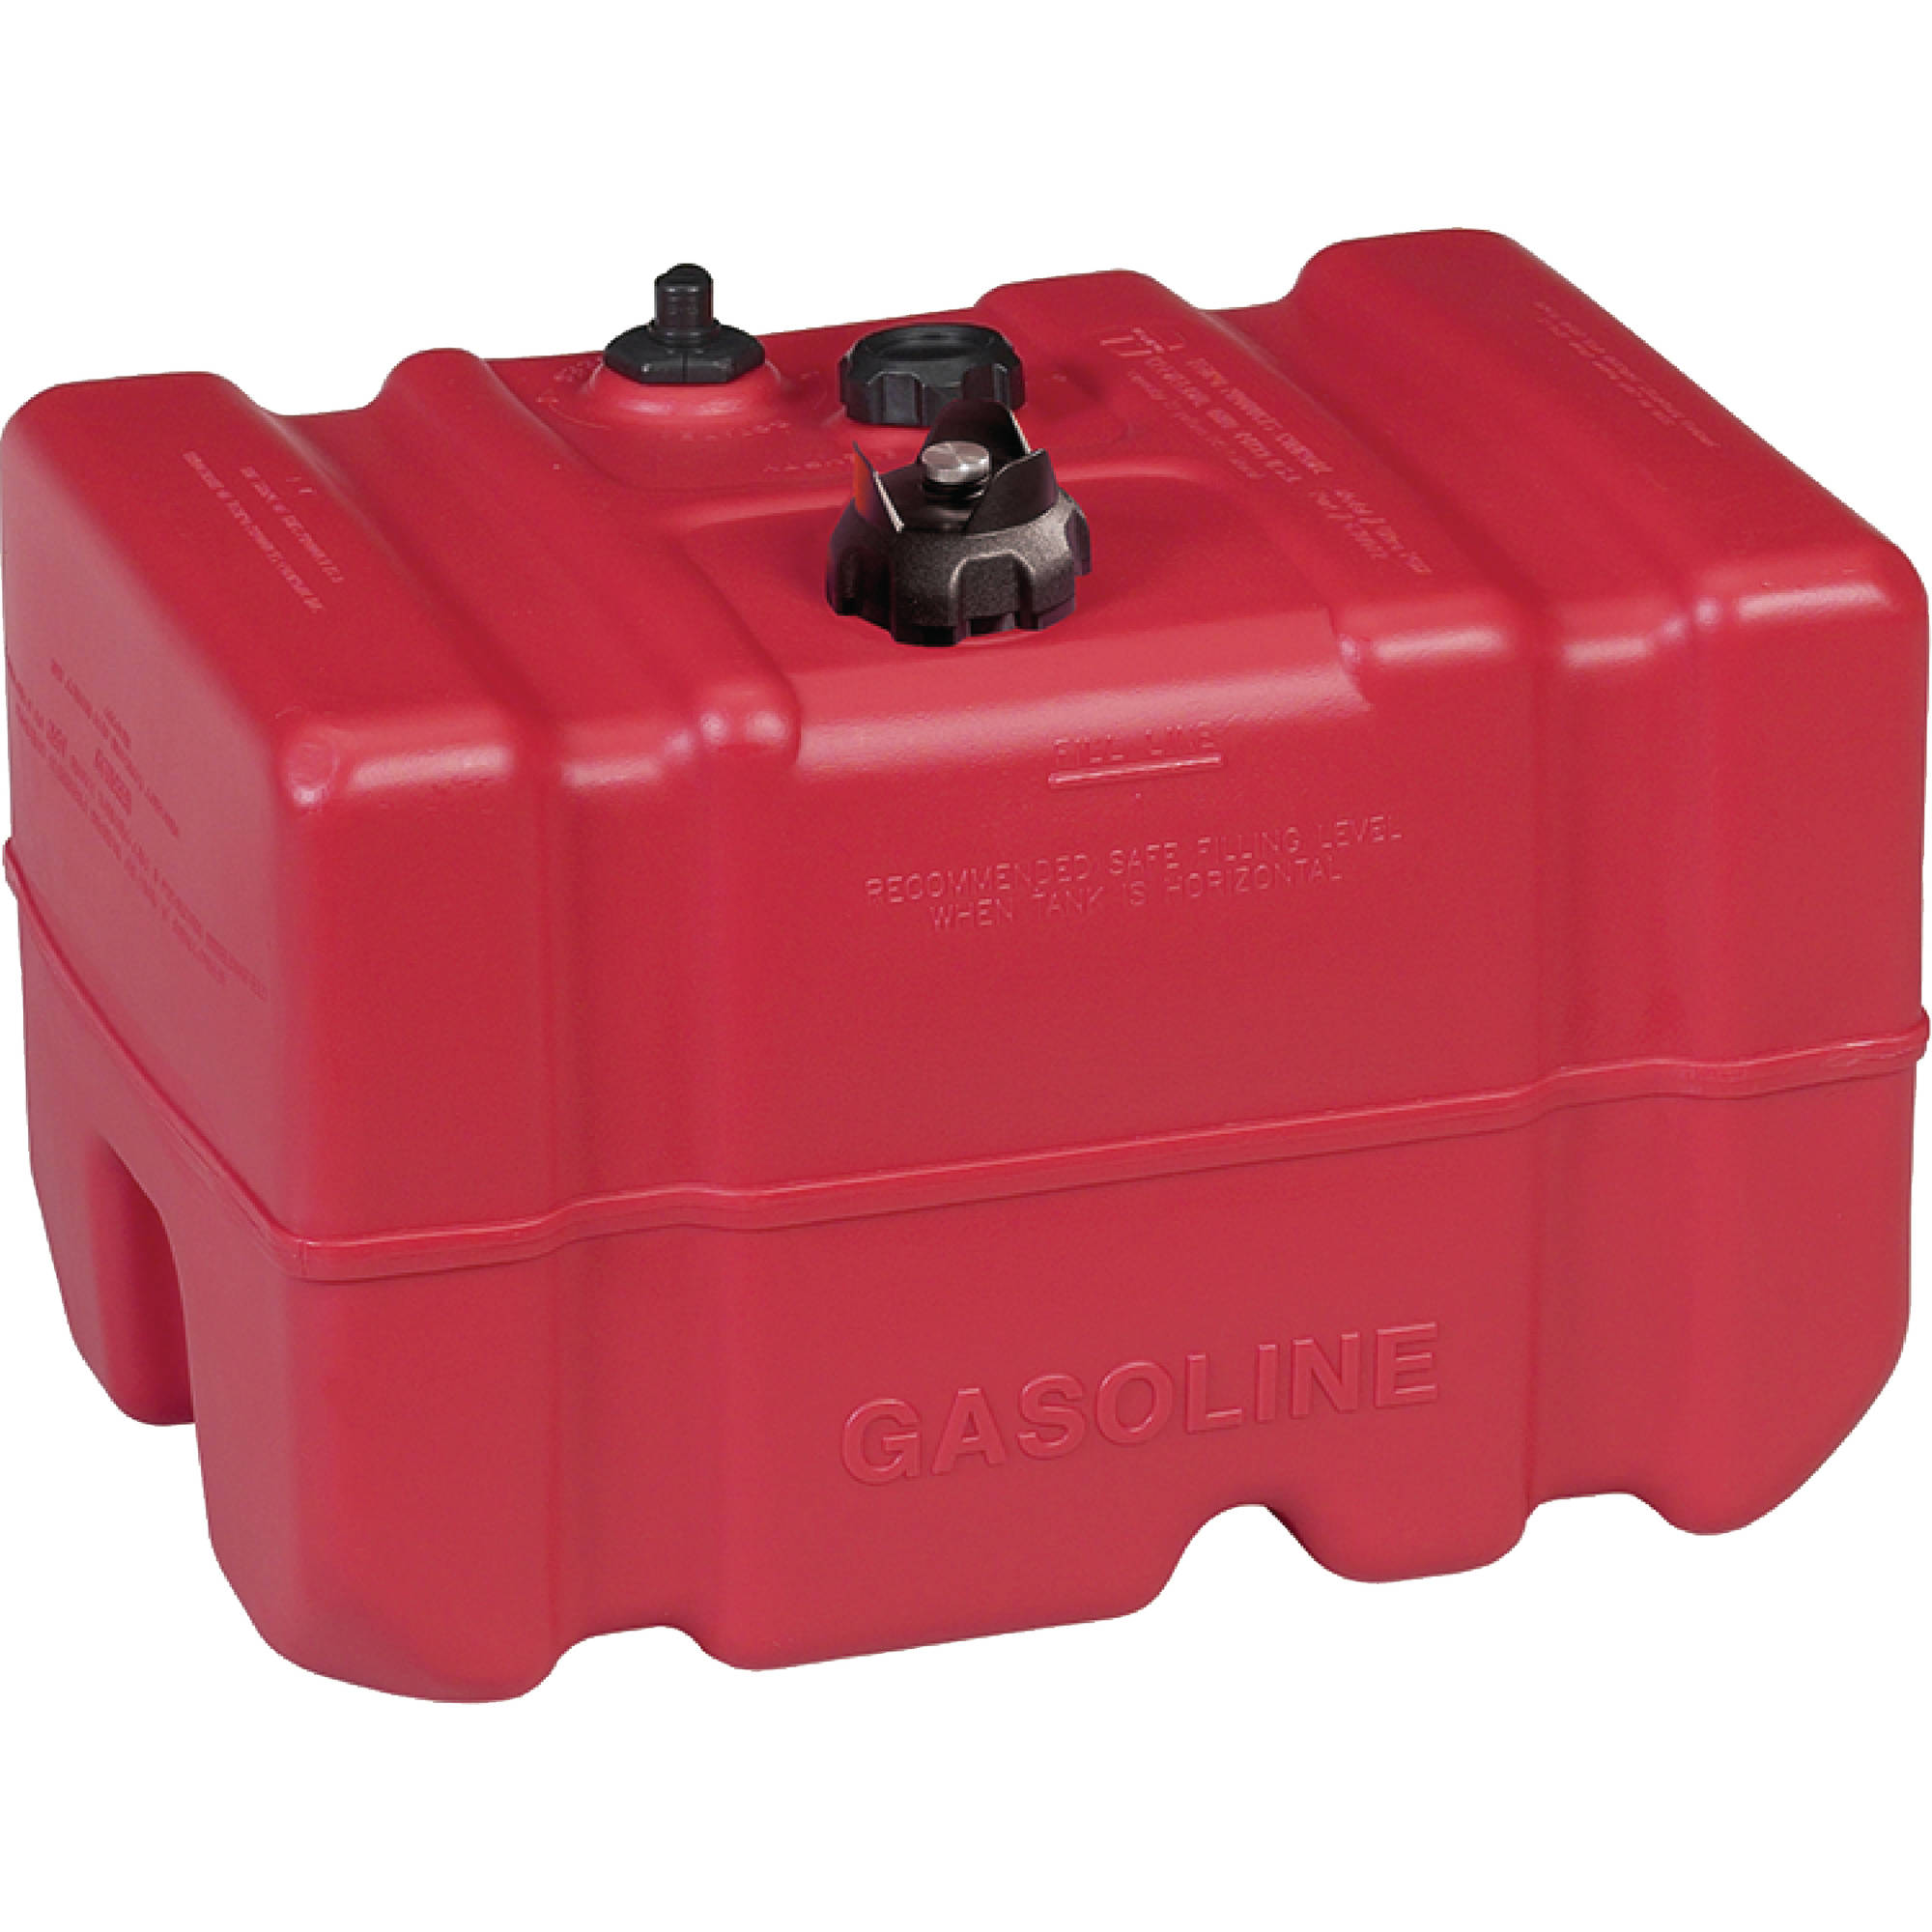 "Moeller Low Perm Certified Fuel Tank 12 Gallon with 1/4"" Fuel Pick-Up Adapter and Mechanical Direct Sight Gauge"